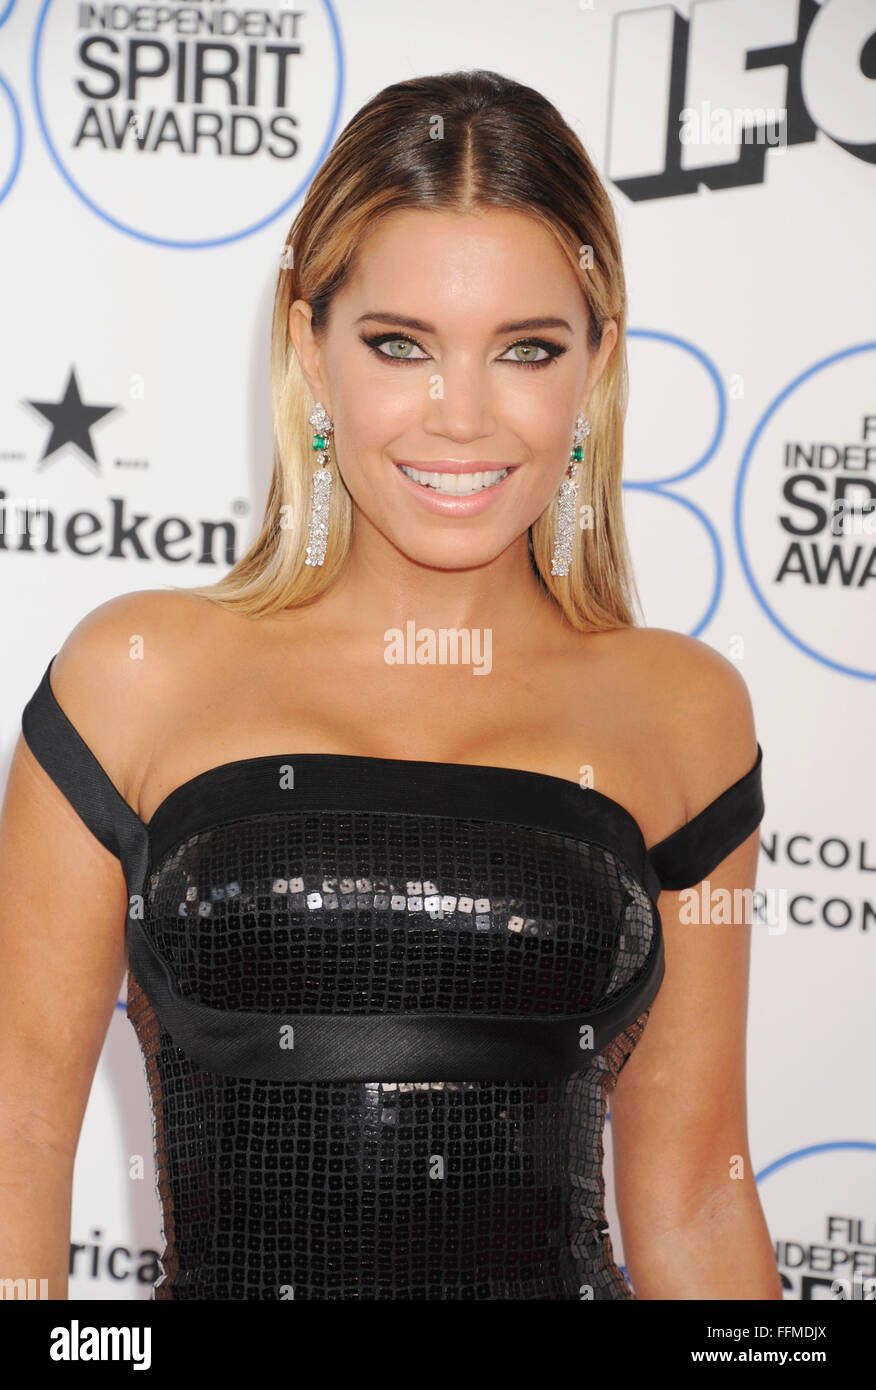 TV personality Sylvie Meis arrives at the 2015 Film Independent Spirit Awards on February 21, 2015 in Santa Monica, - Stock Image